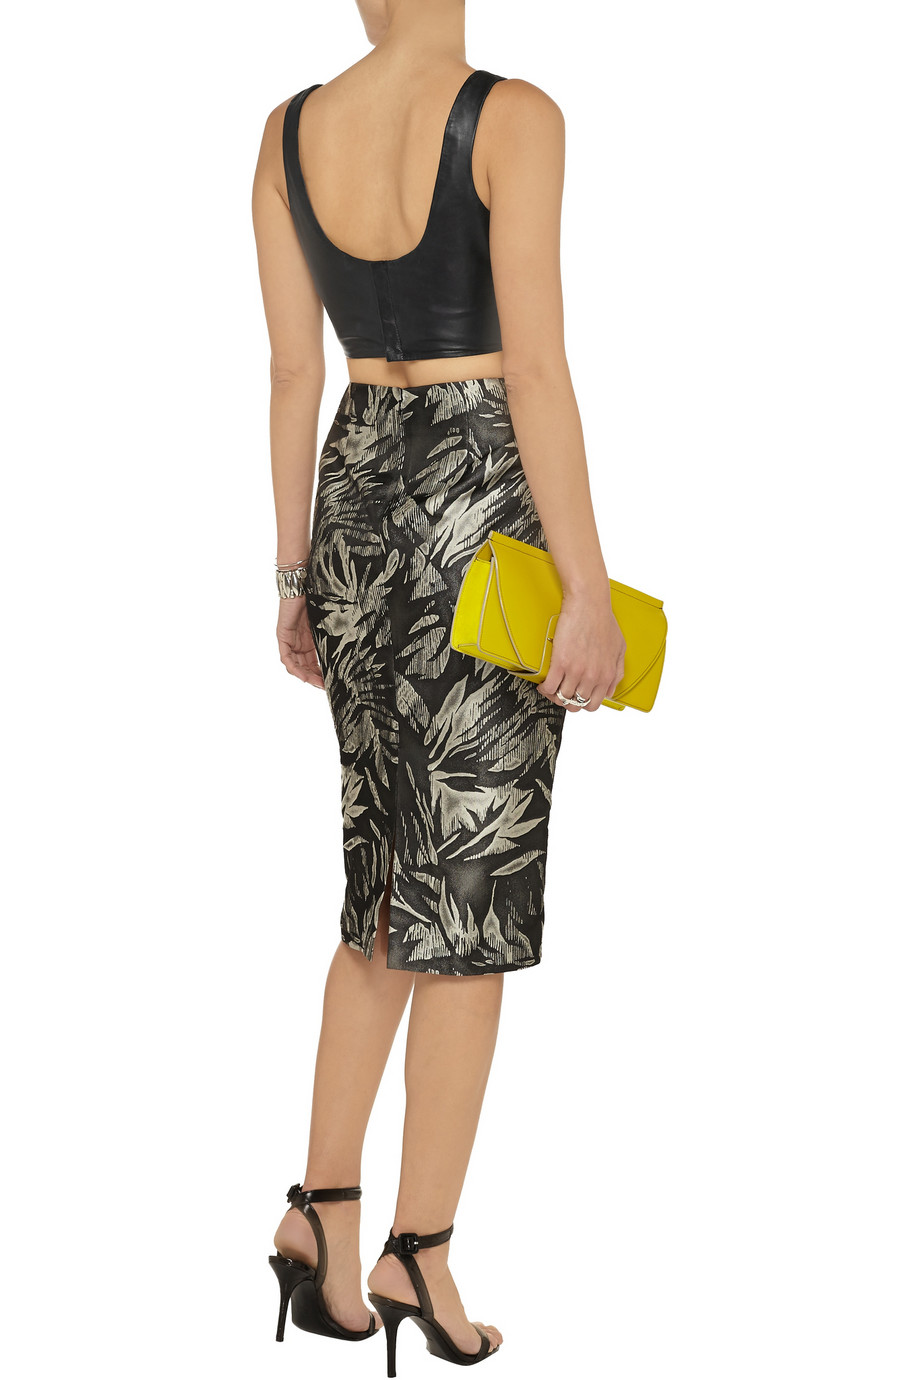 Jason Wu Jacquard-knit pencil skirt – 54% at THE OUTNET.COM